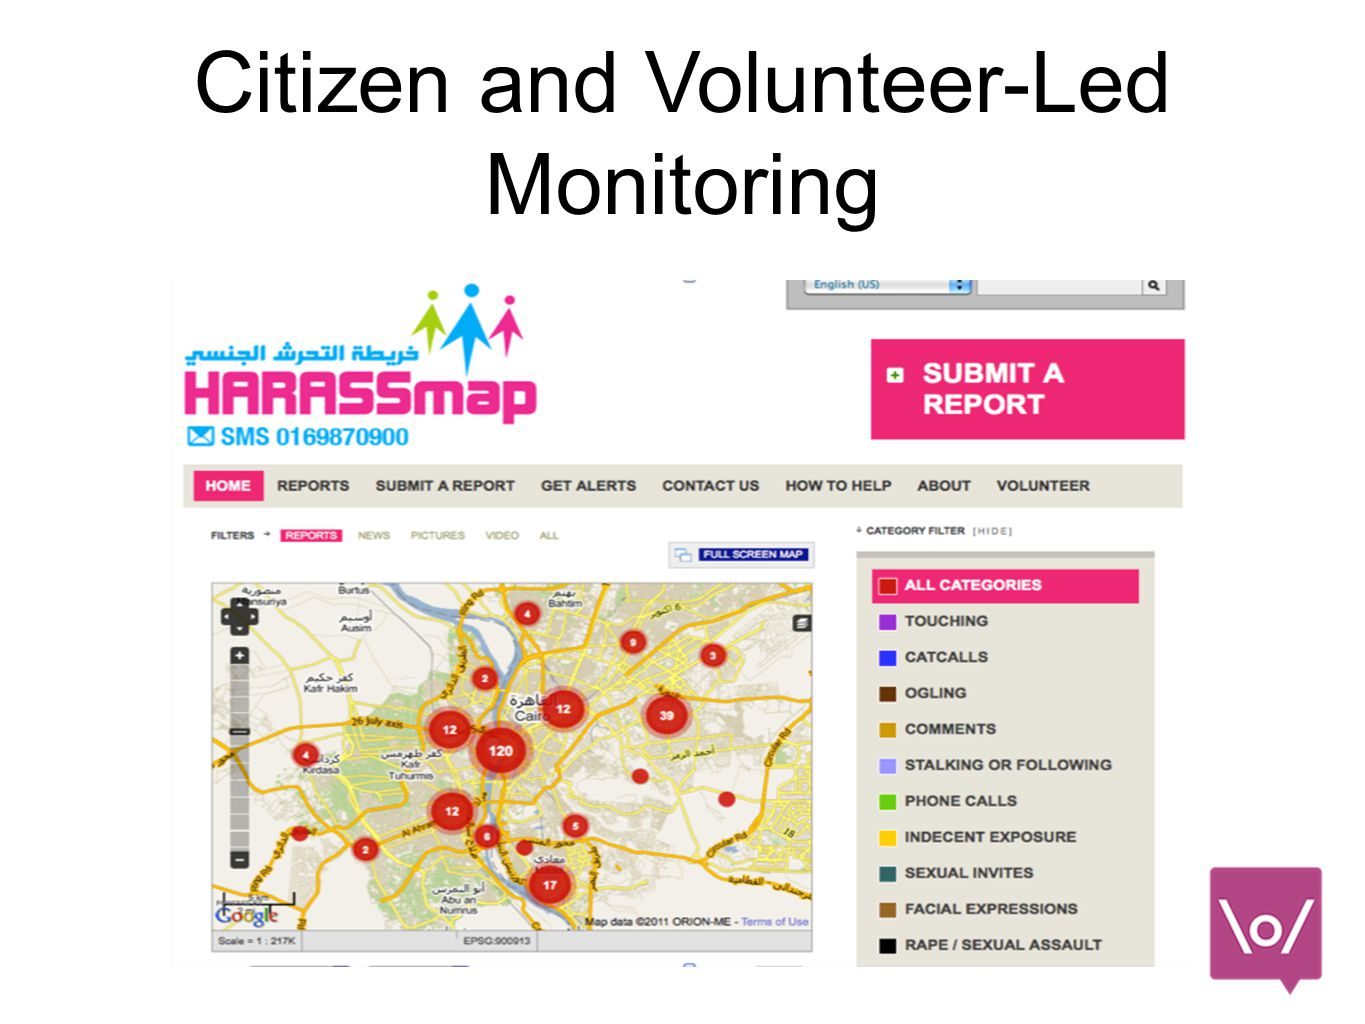 Citizen and Volunteer-Led Monitoring